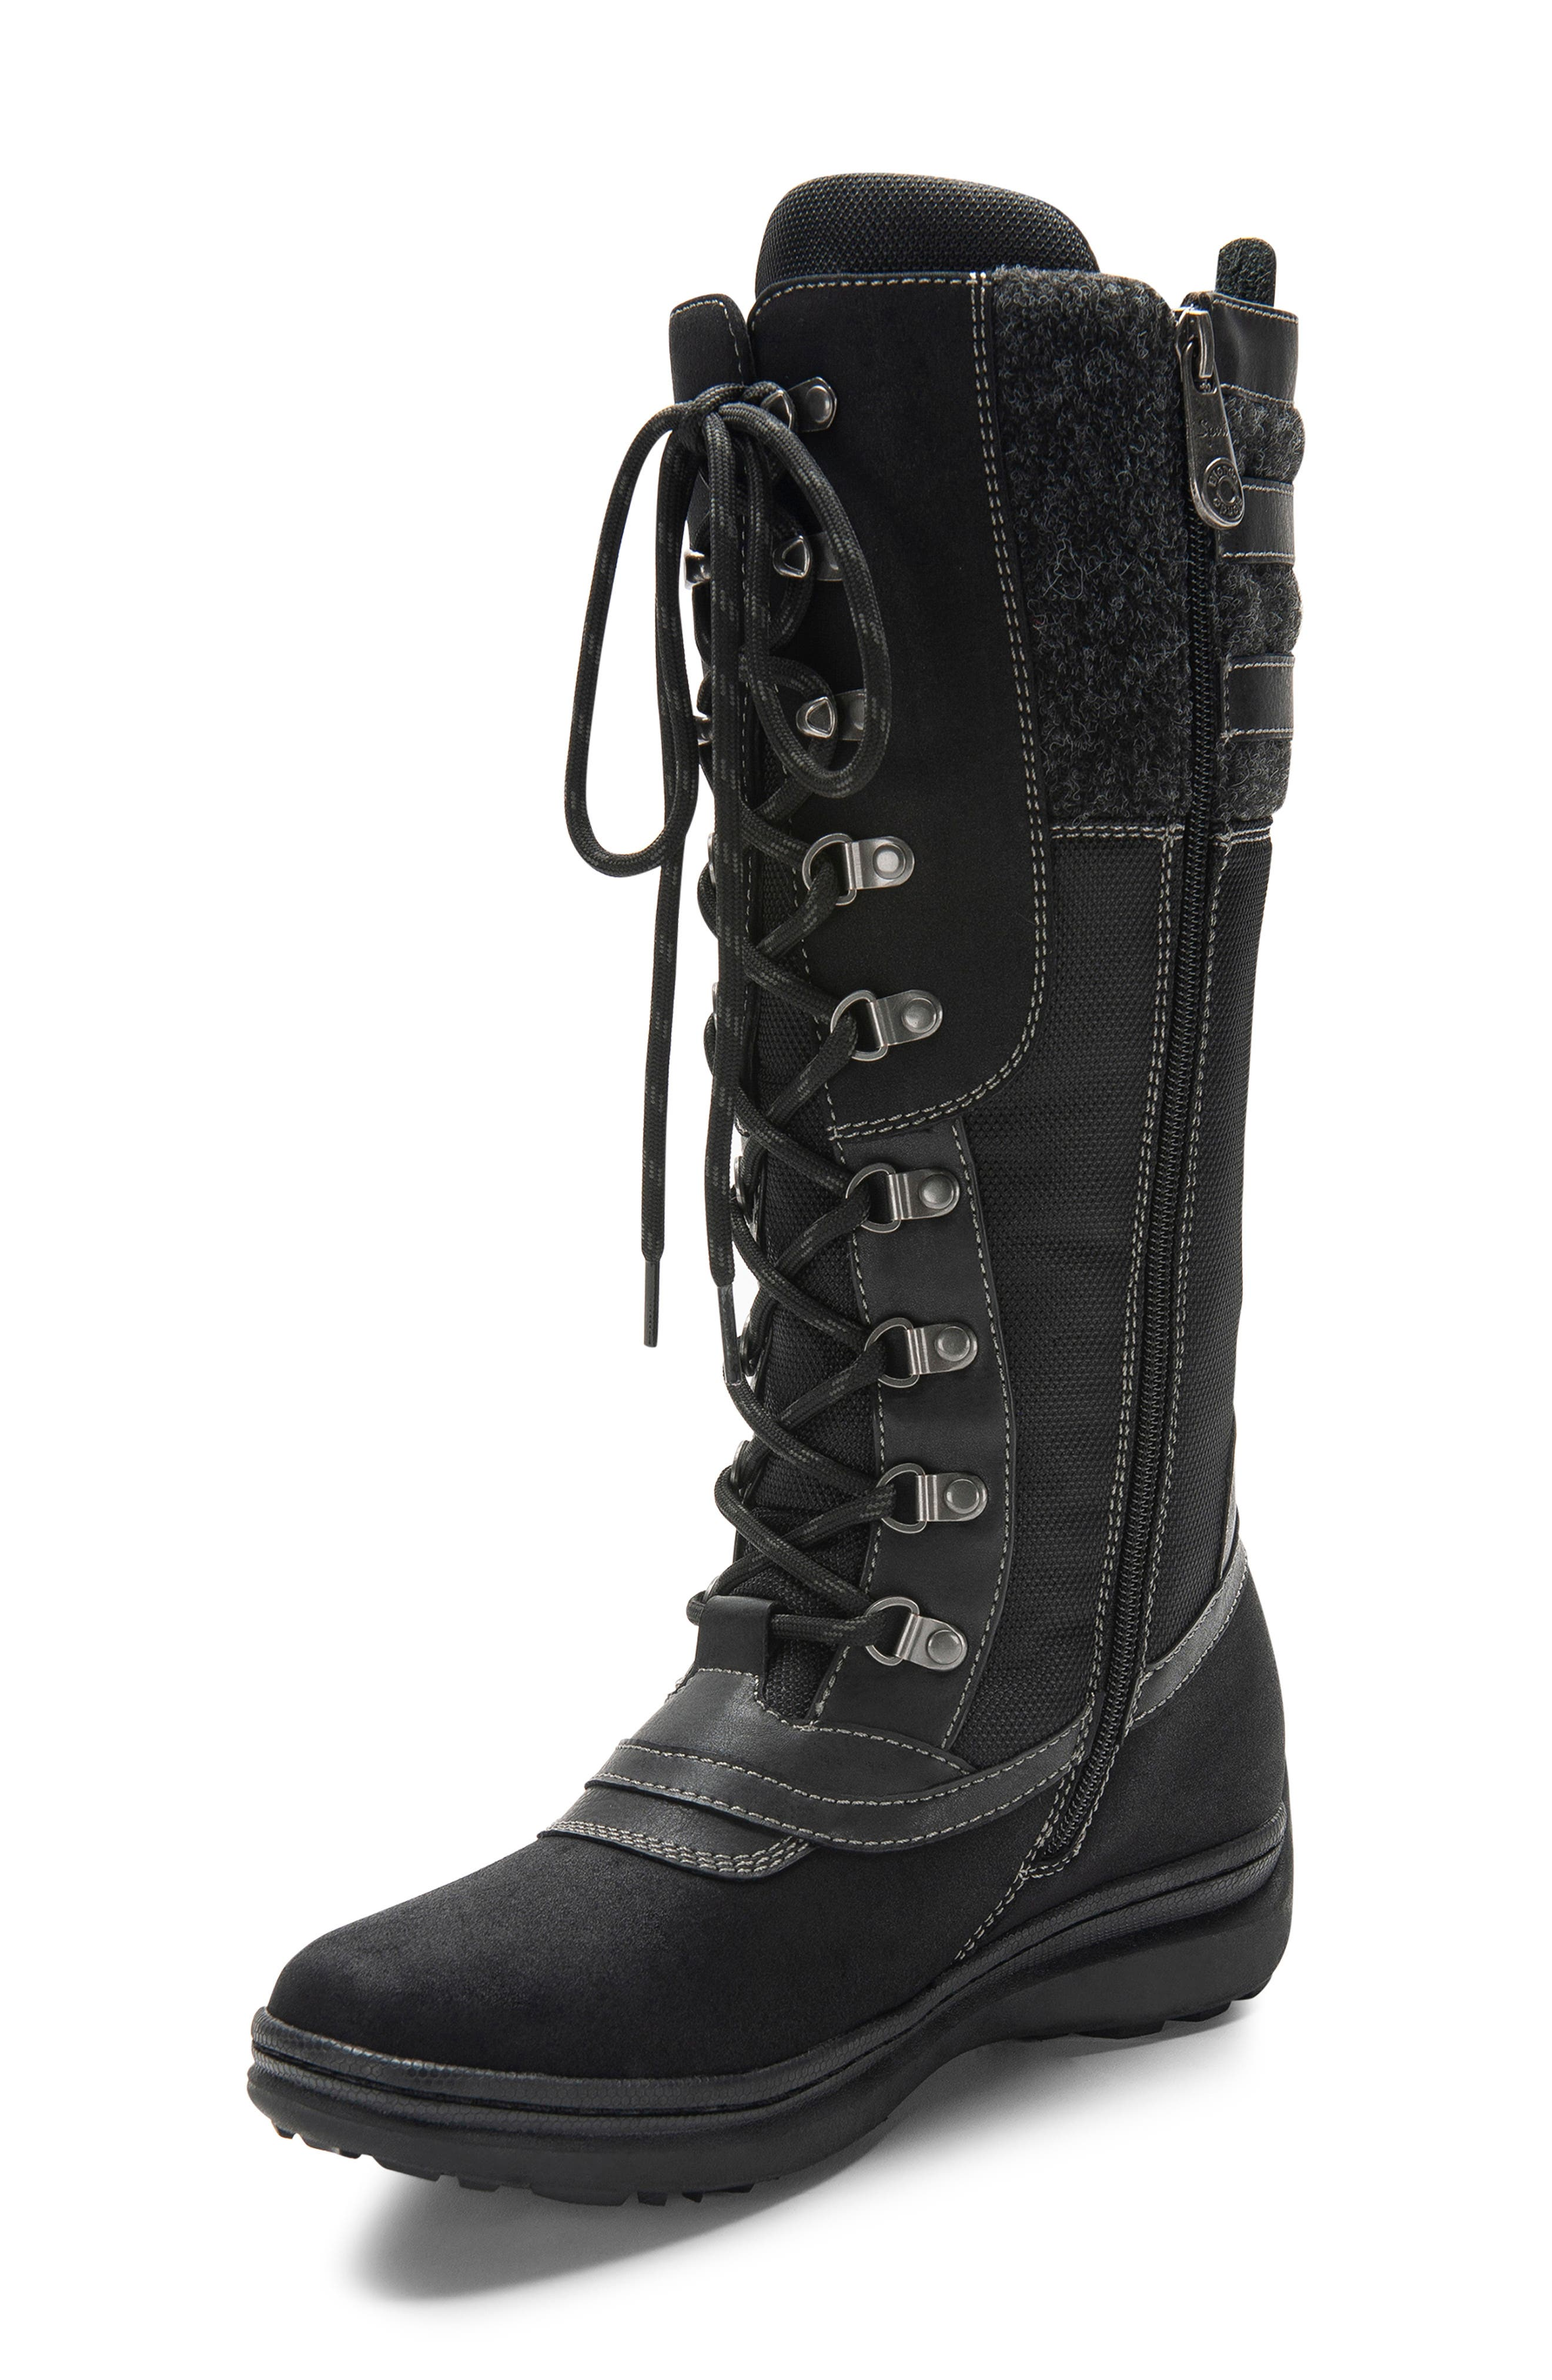 India Waterproof Snow Boot,                             Main thumbnail 1, color,                             BLACK LEATHER